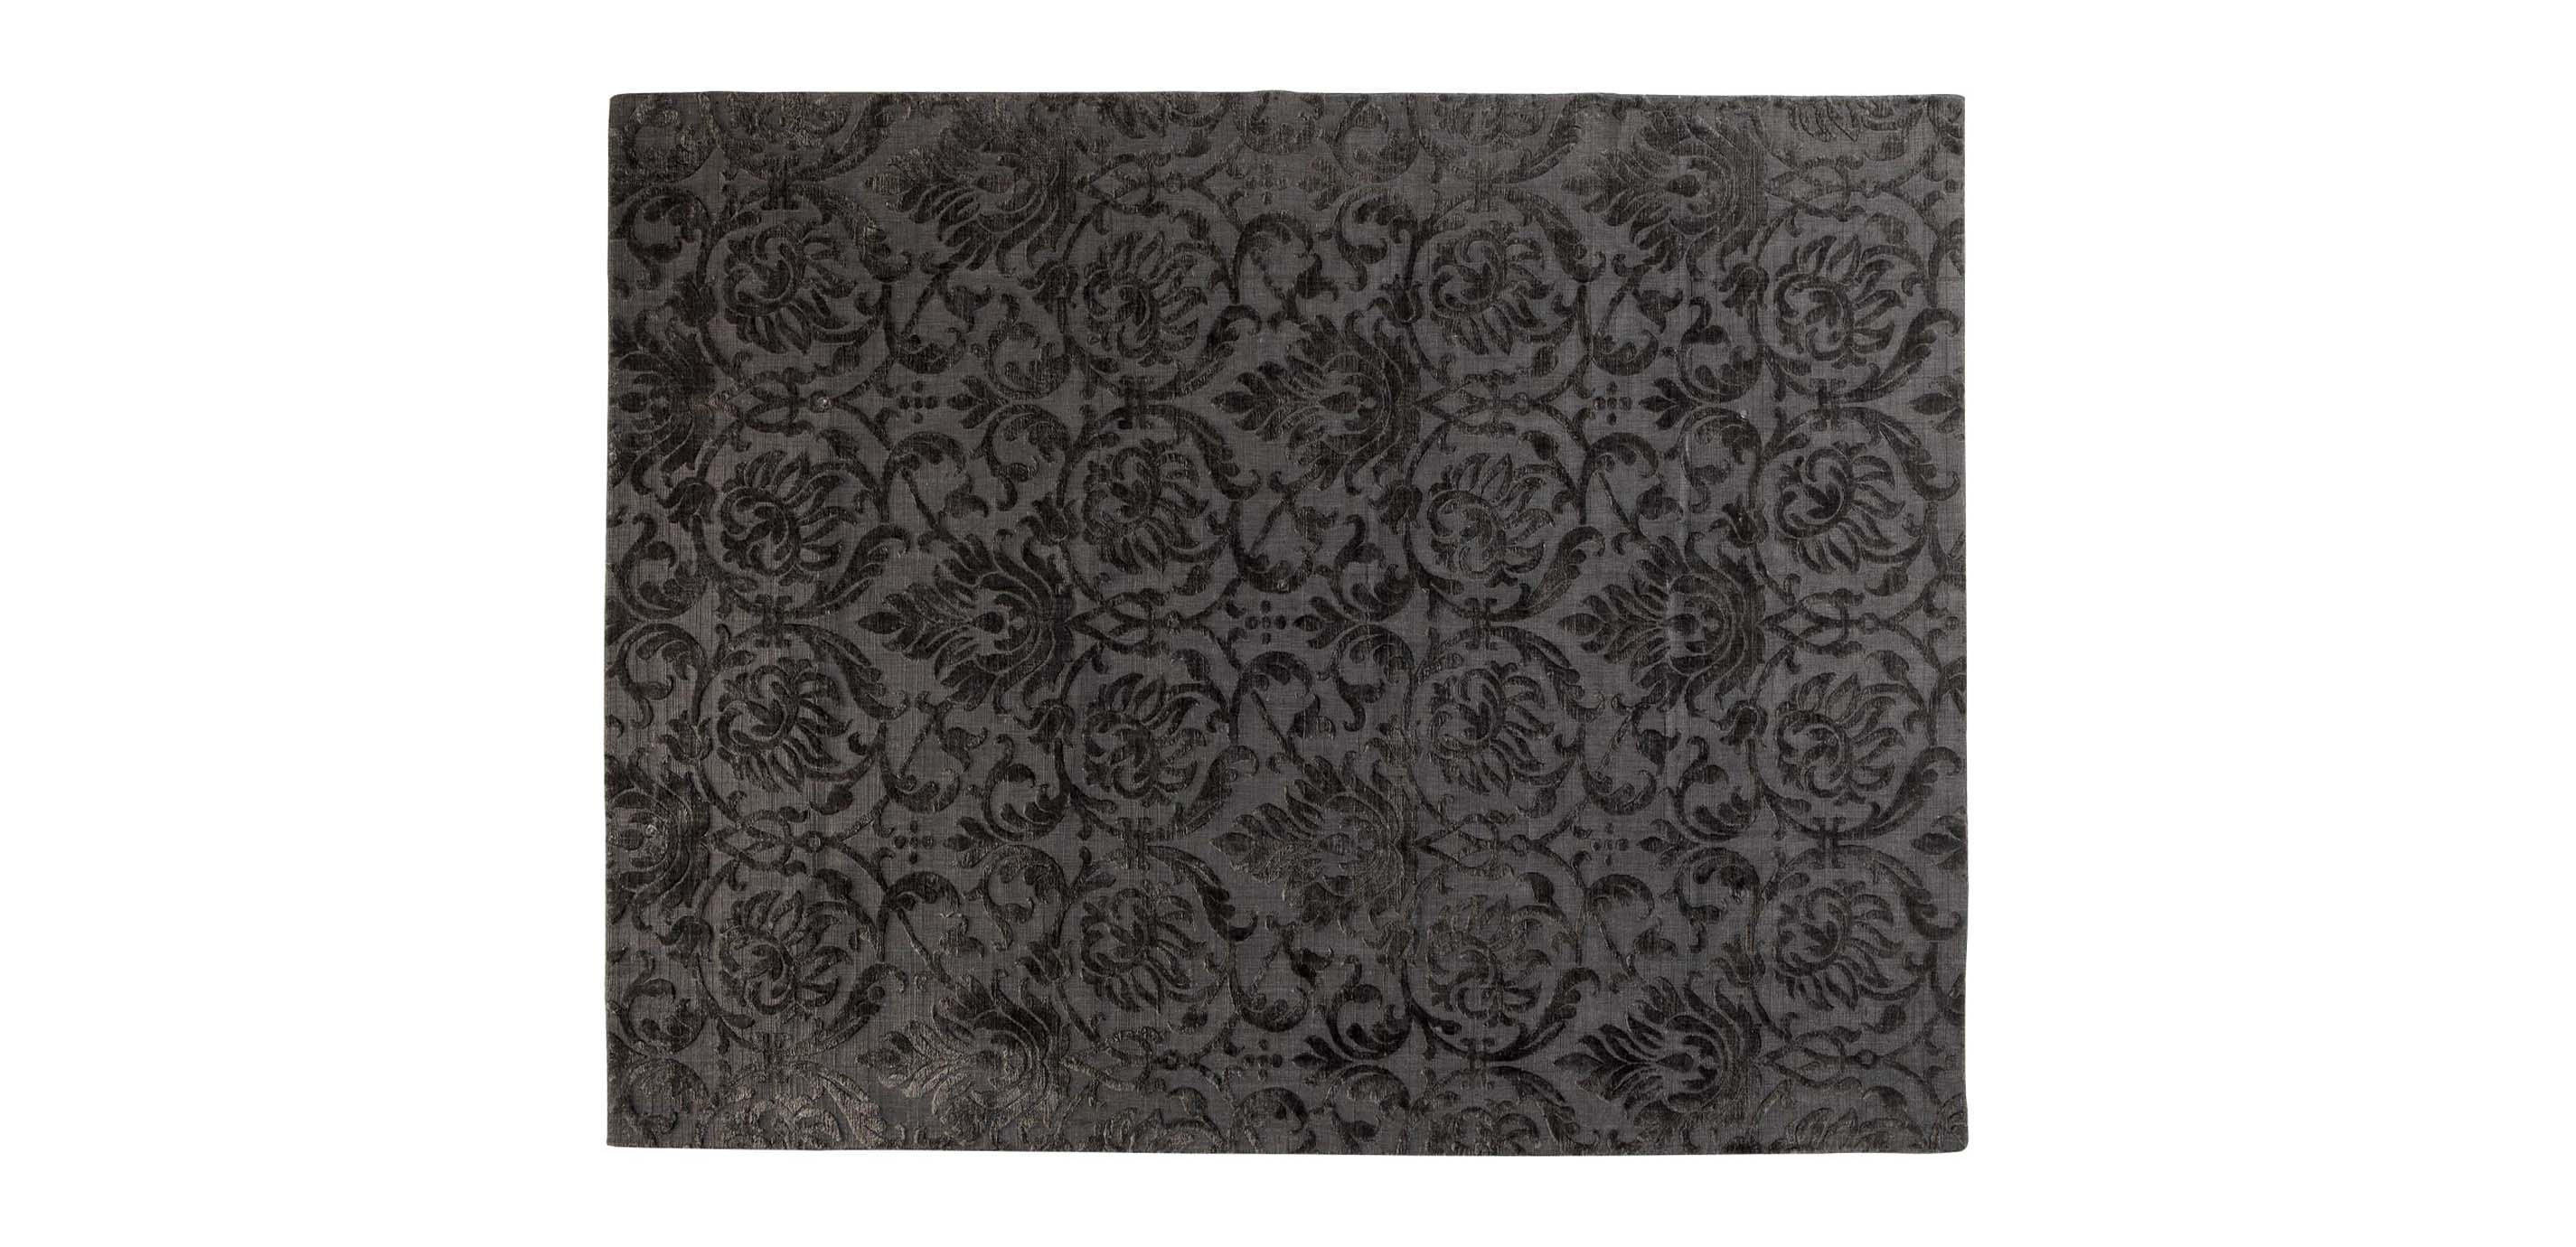 Images Jacquard Damask Rug, Charcoal , , Large_gray